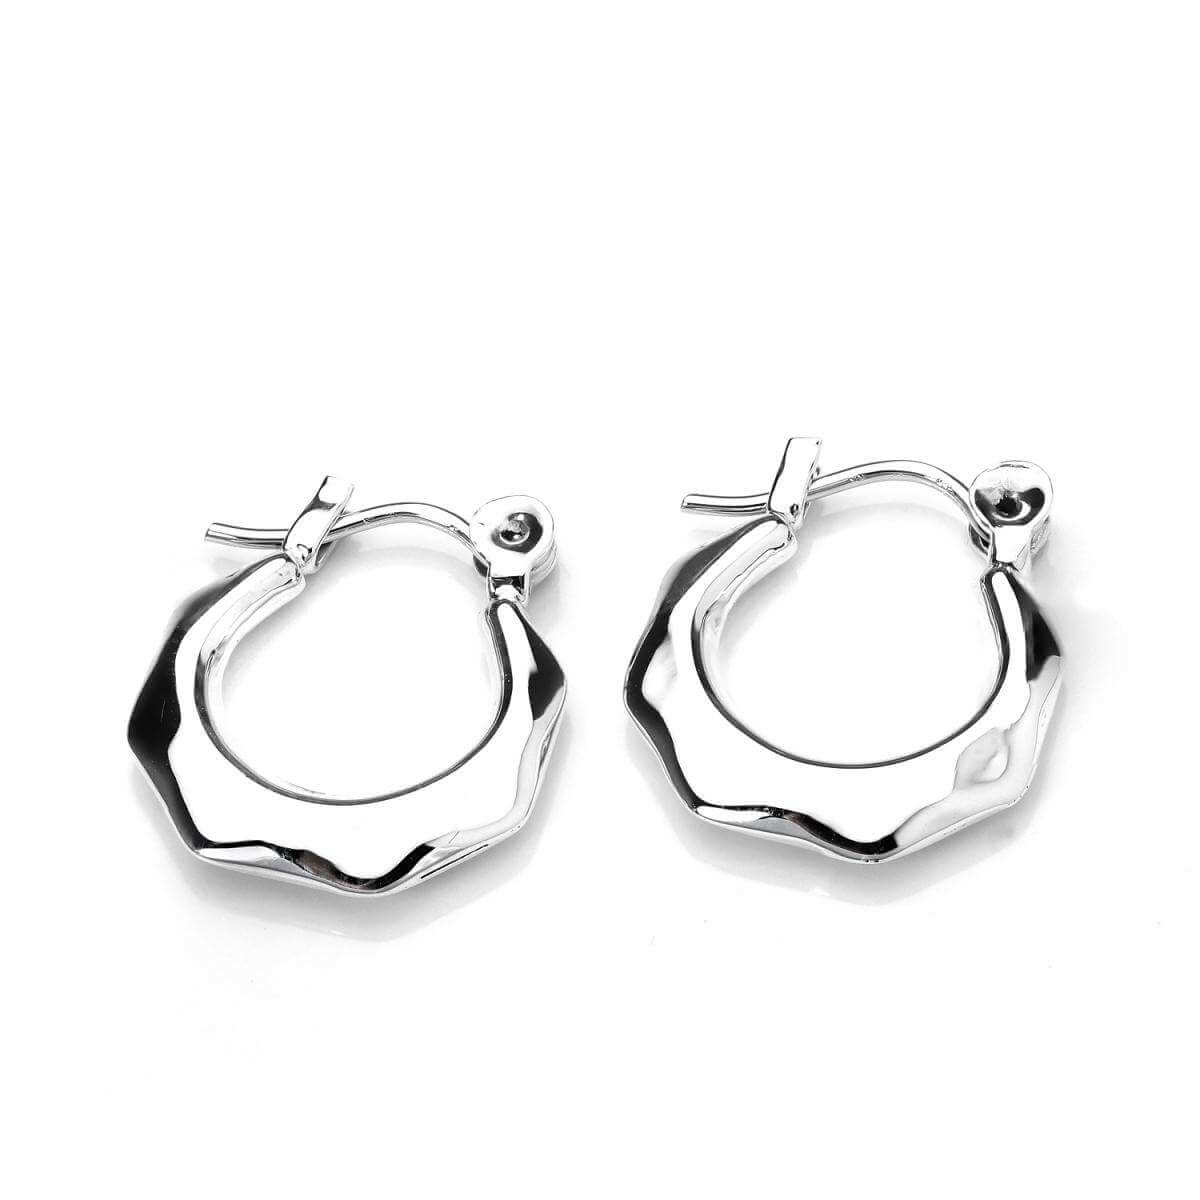 Sterling Silver Faceted Design Creole Earrings